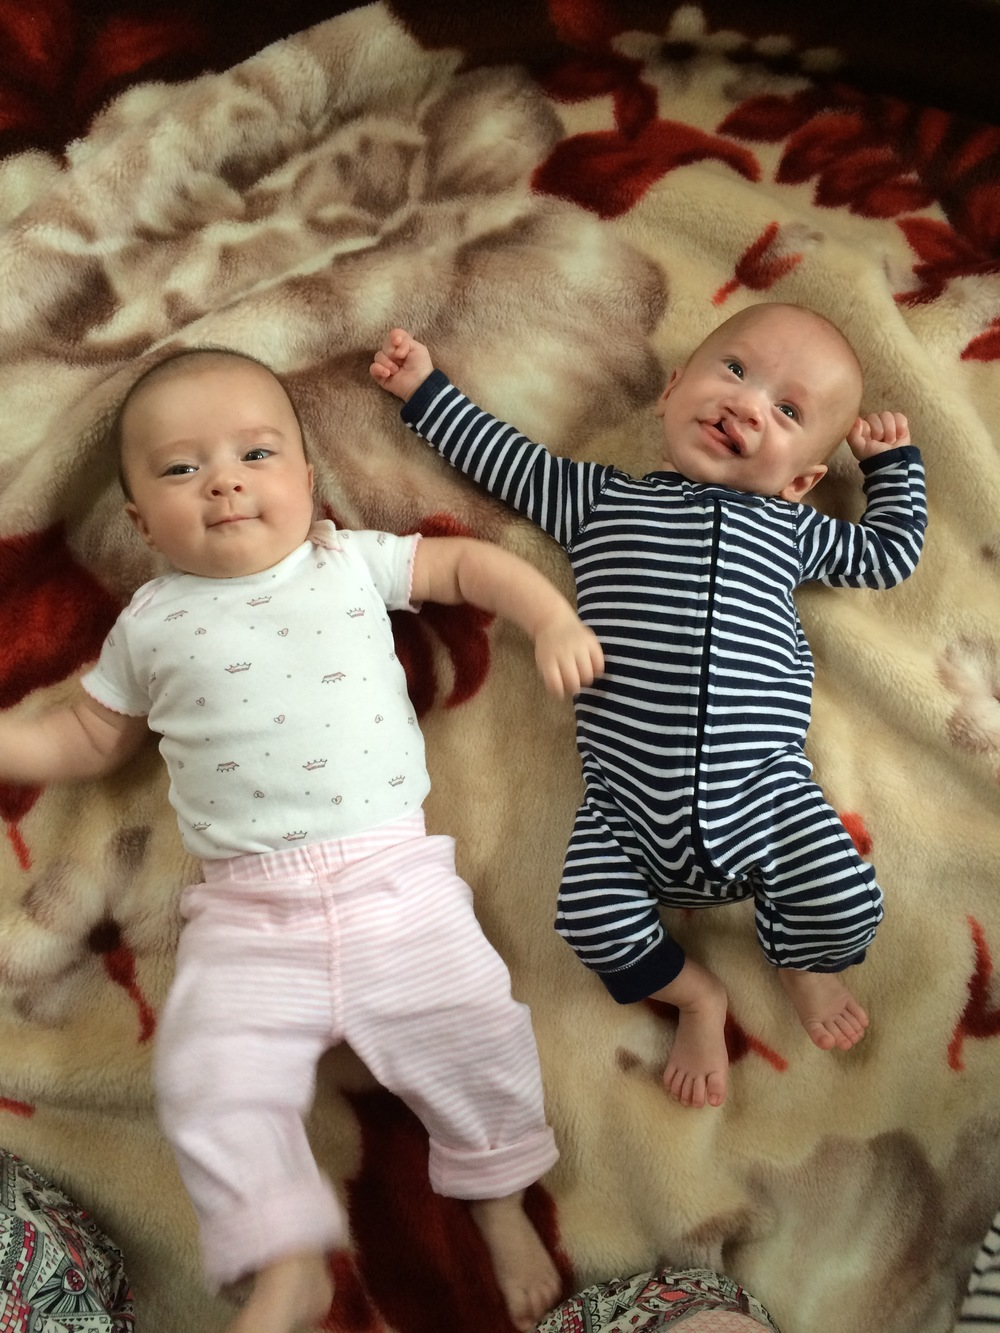 This is Hadley (left) and Parker (right), the (not so much anymore) brand new twins of Erika and Nate.  It was really pretty incredible to be able to meet them at such a young age and see them as tiny babies.  I'm sure I'll obnoxiously remind them of this as they get older.